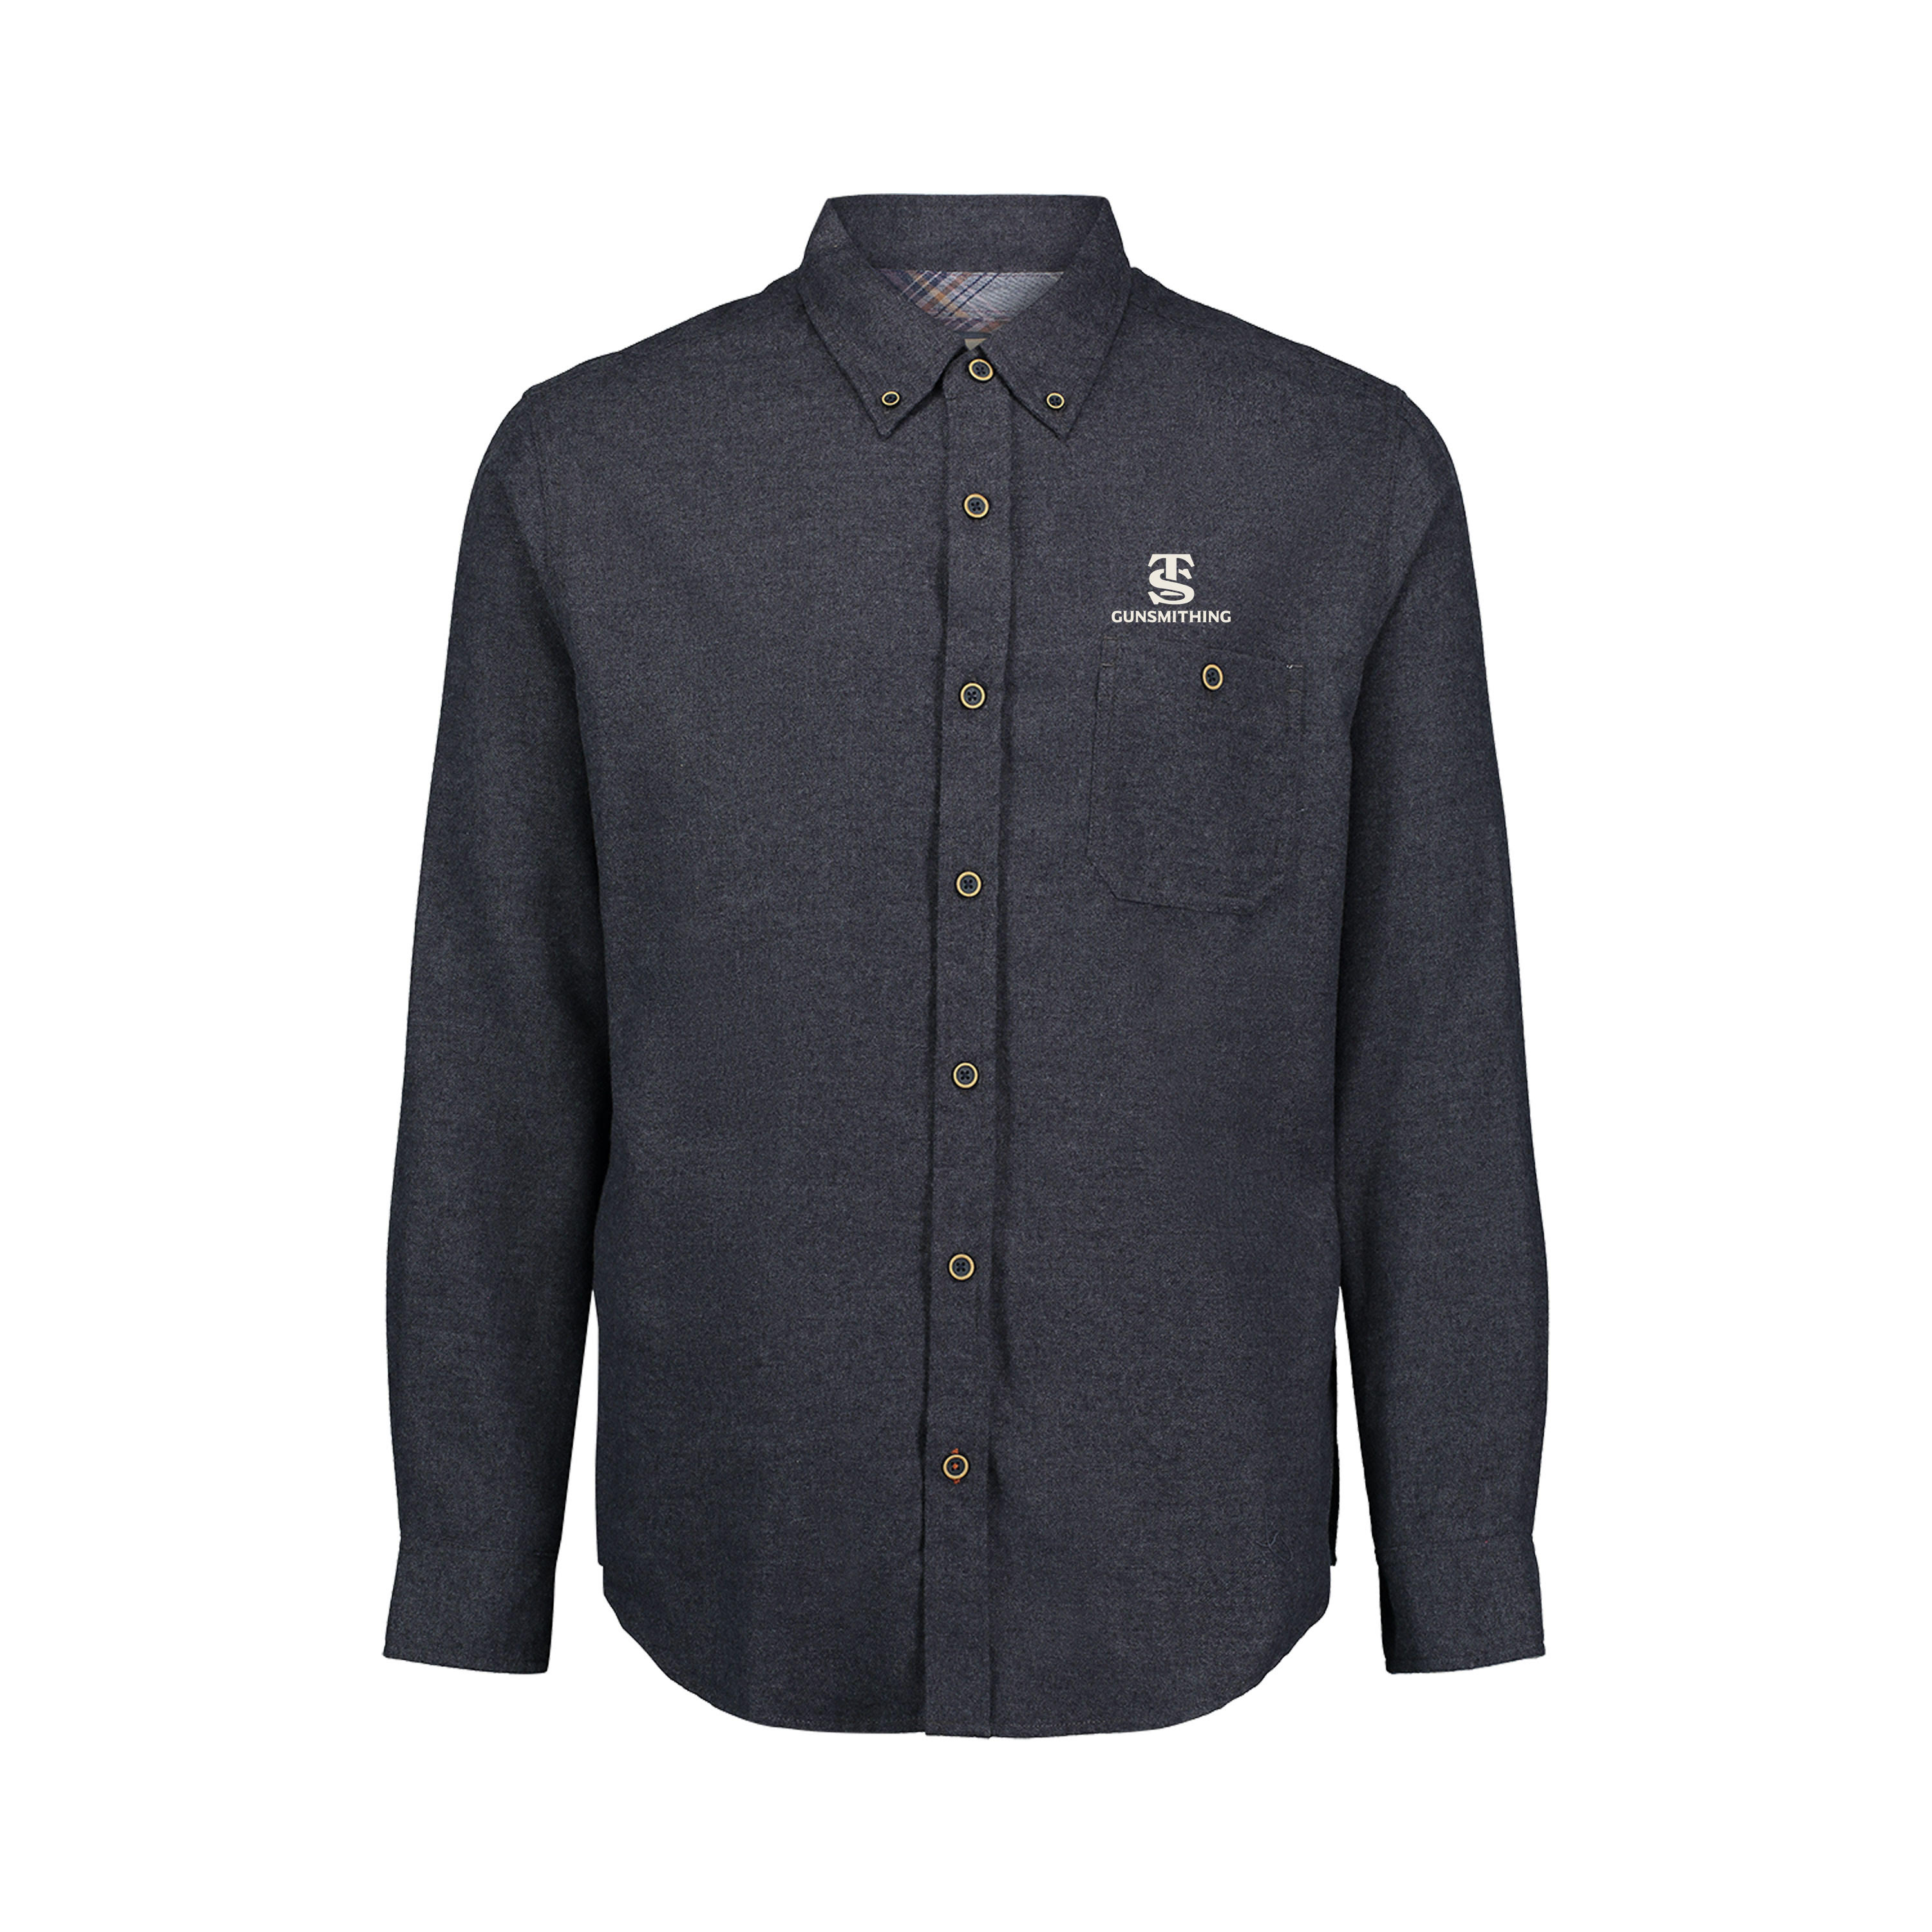 TS Gunsmithing Long Sleeve Button Down